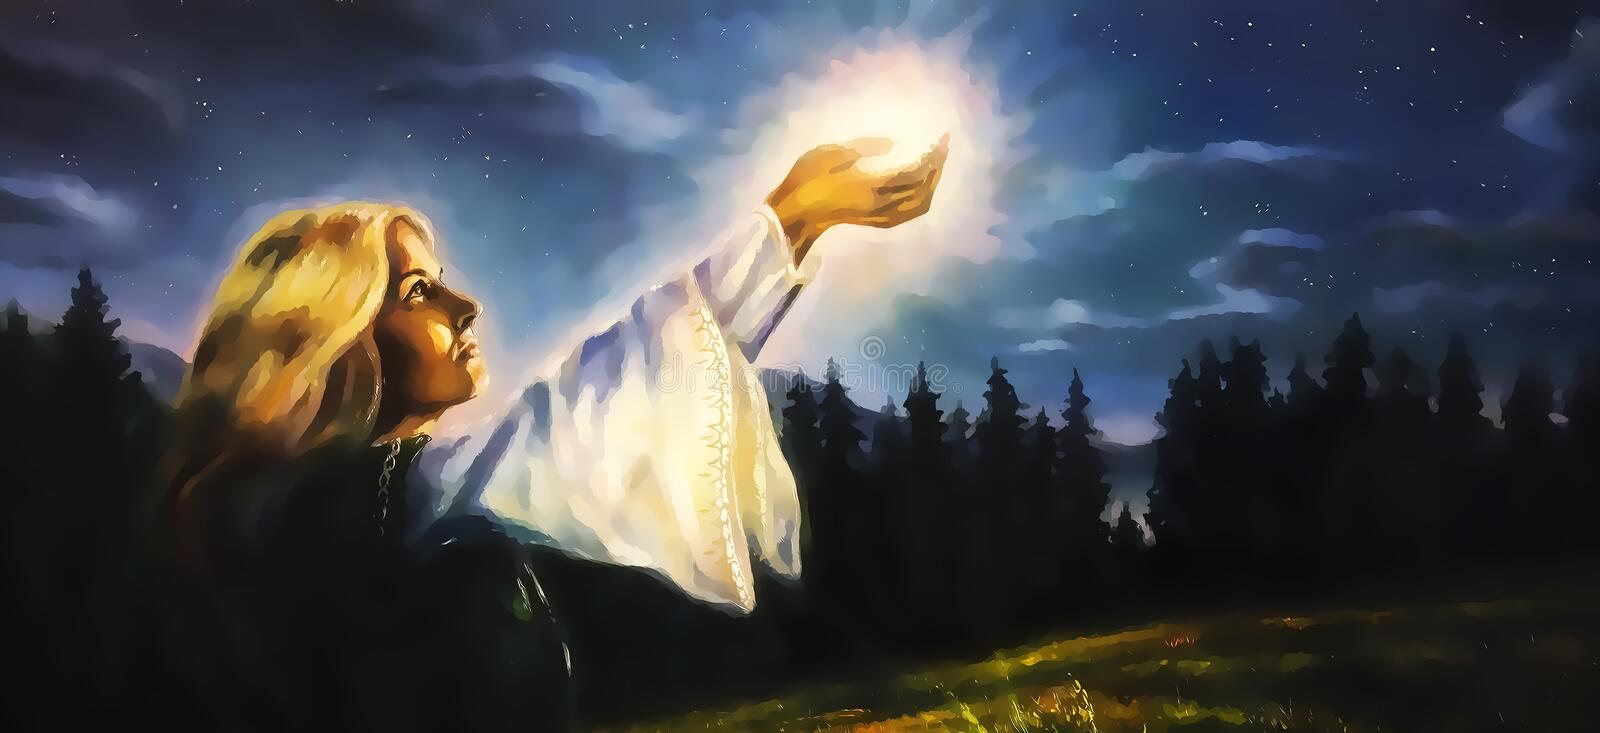 Beautiful woman with hands holding light in nocturnal landscape, computer graphic from painting. stock photos